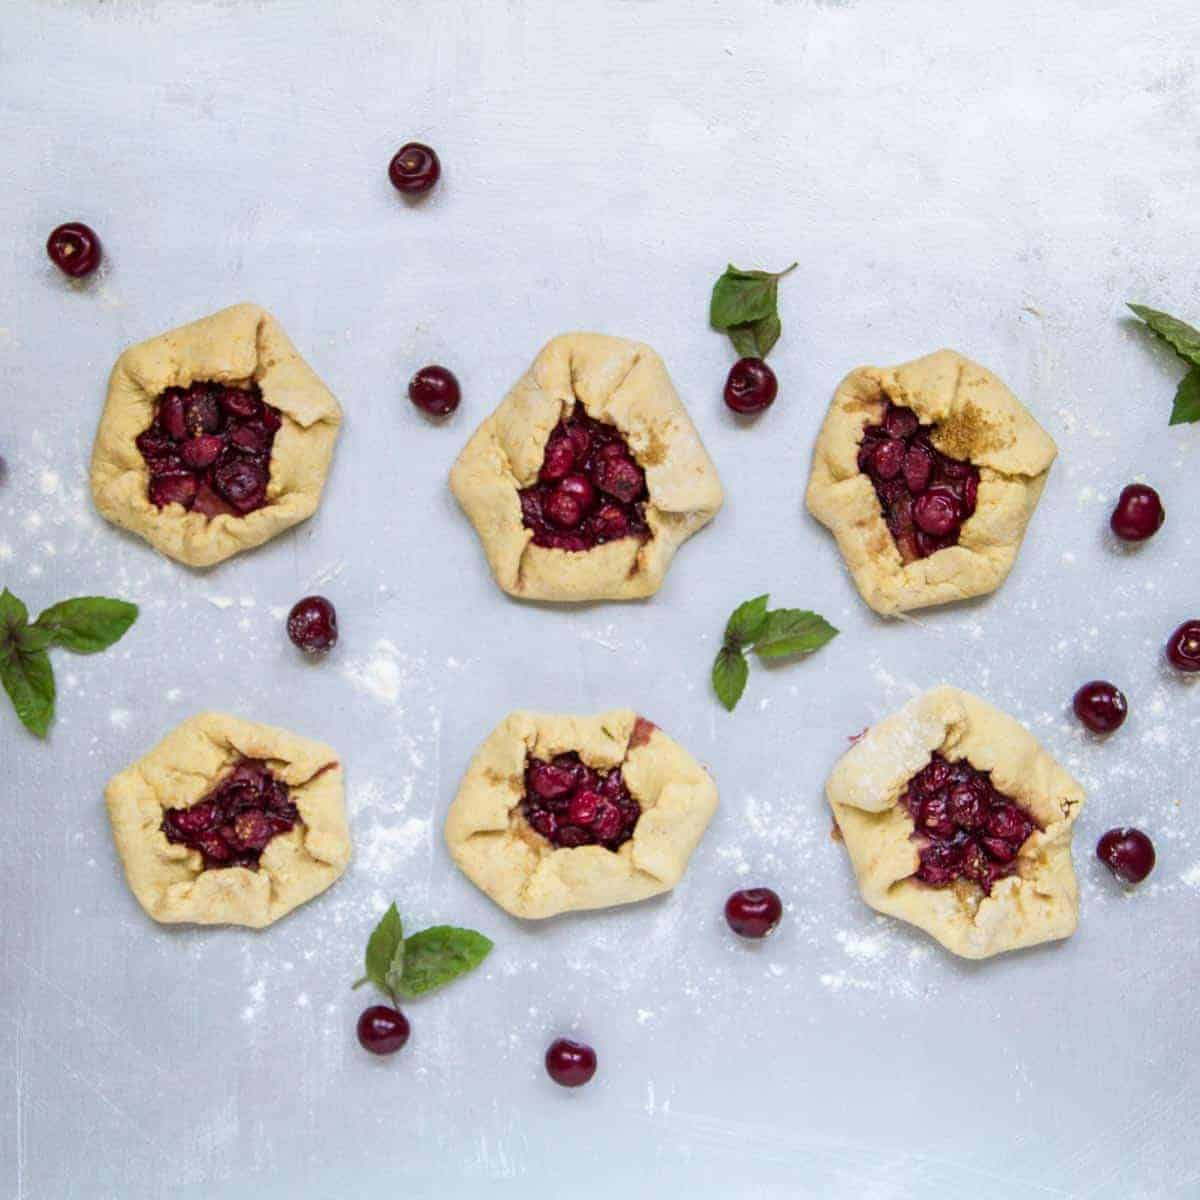 Cornmeal crust tart cherry galette recipe